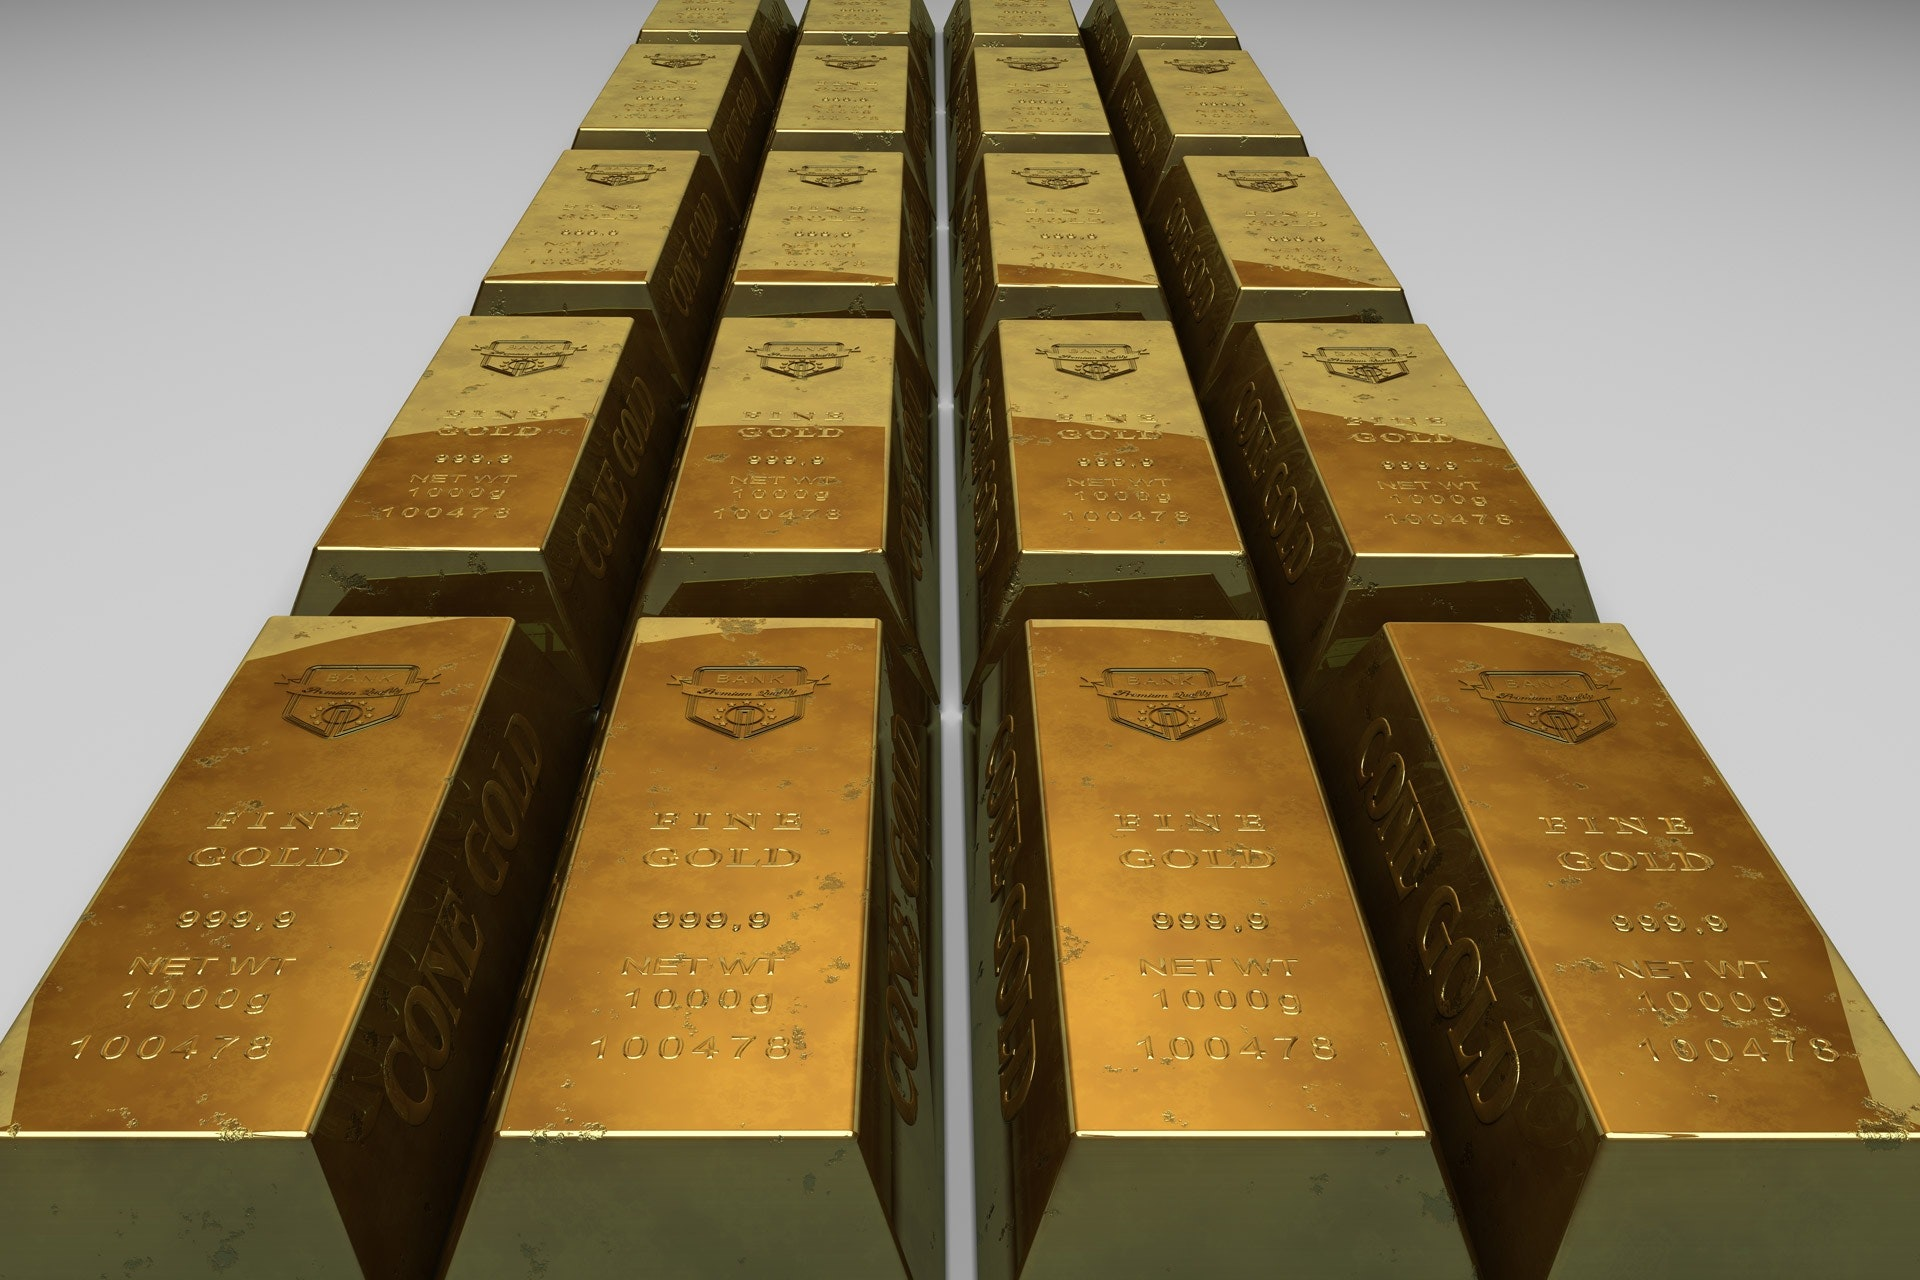 Important Things To Consider When Buying Precious Metals